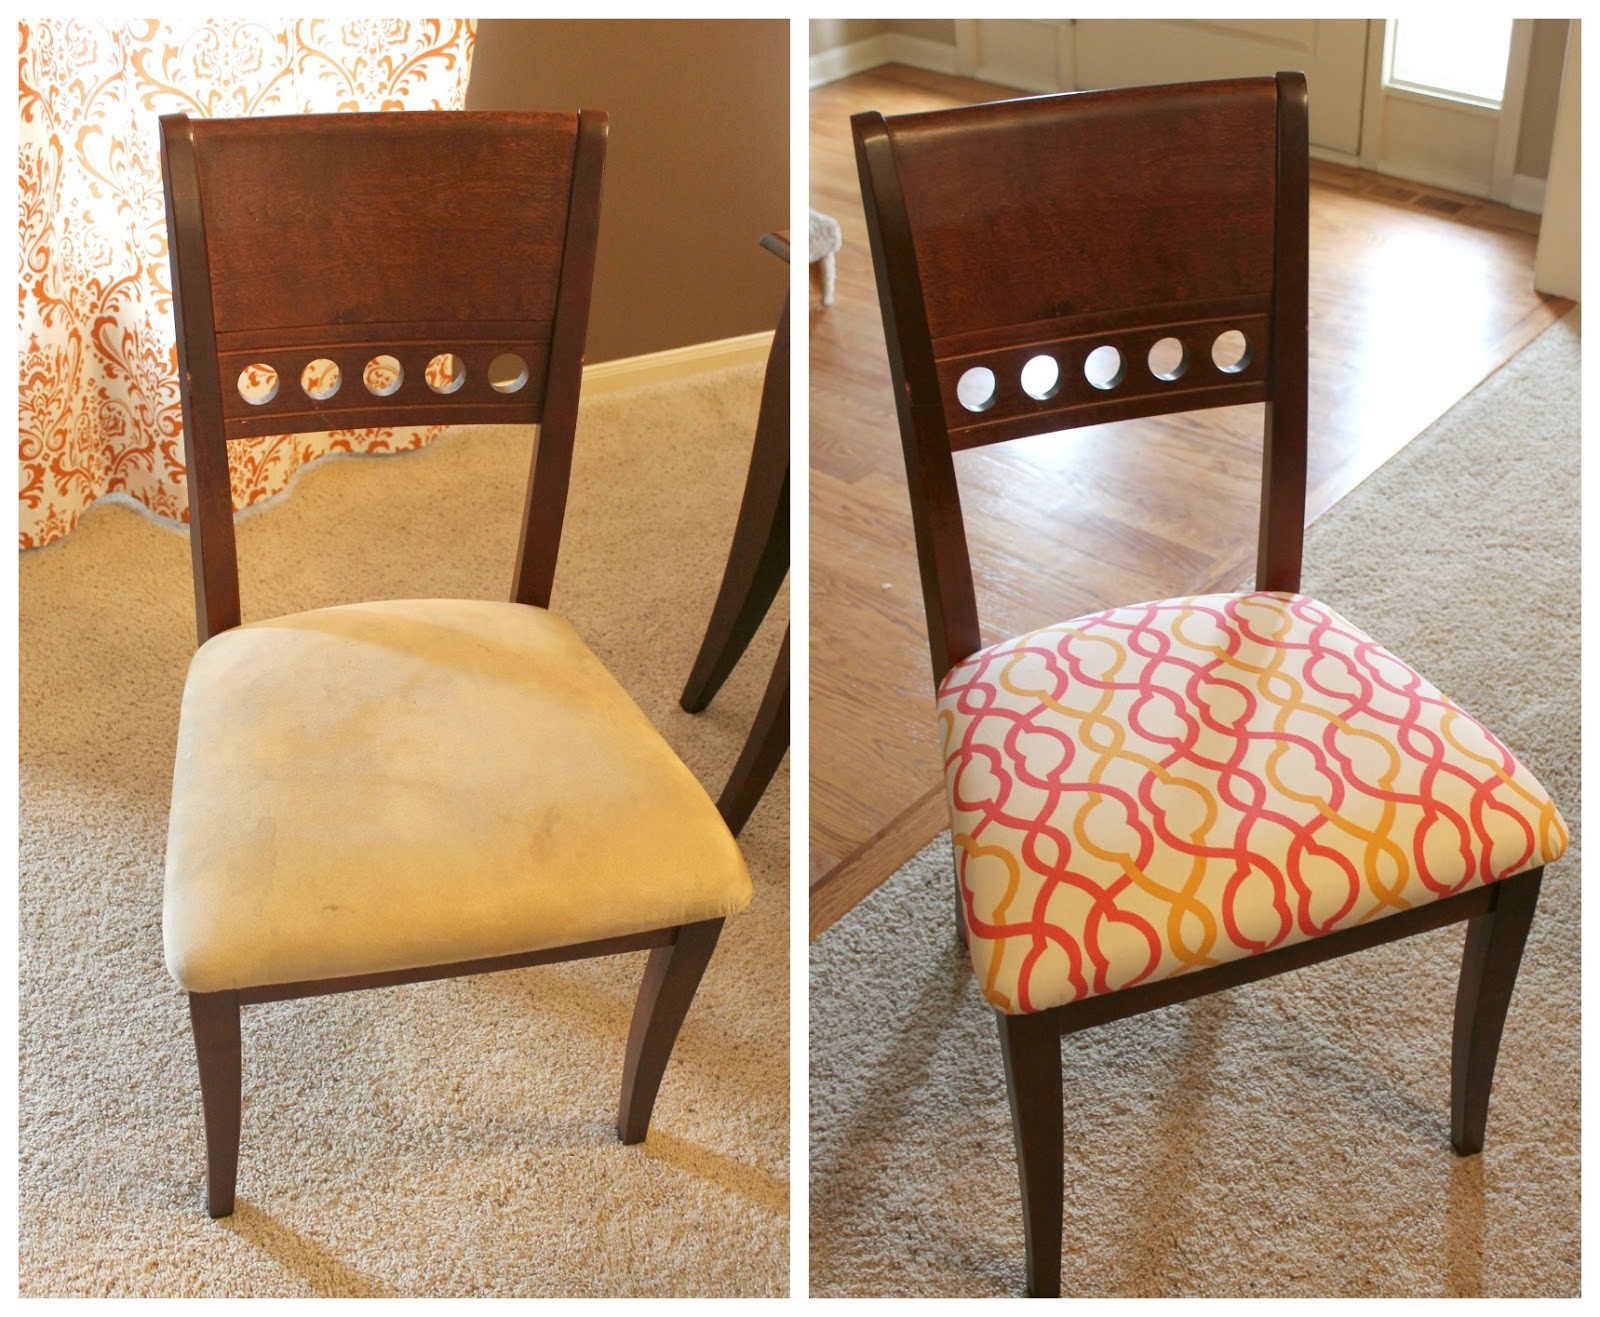 reupholster chair seat reupholster chair seat best of before and after reupholster chair seat how a reupholster chair of reupholster chair seat